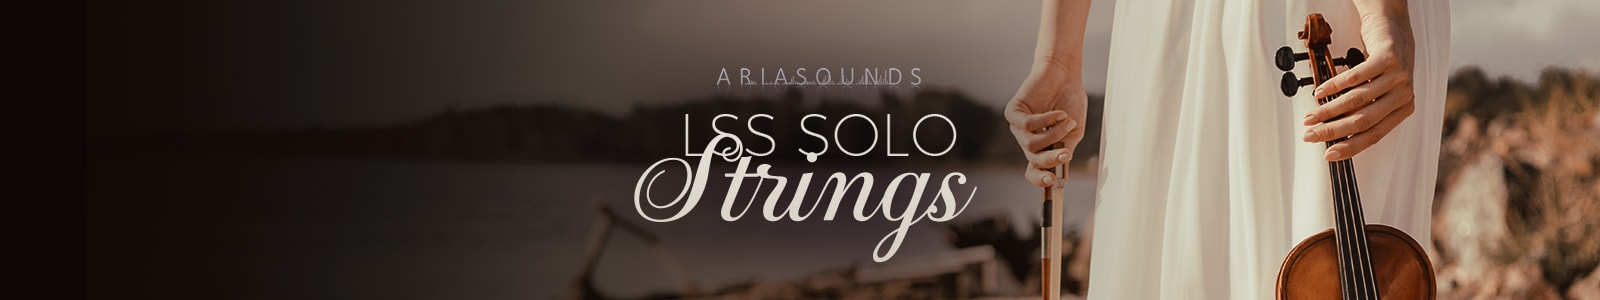 lss solo strings